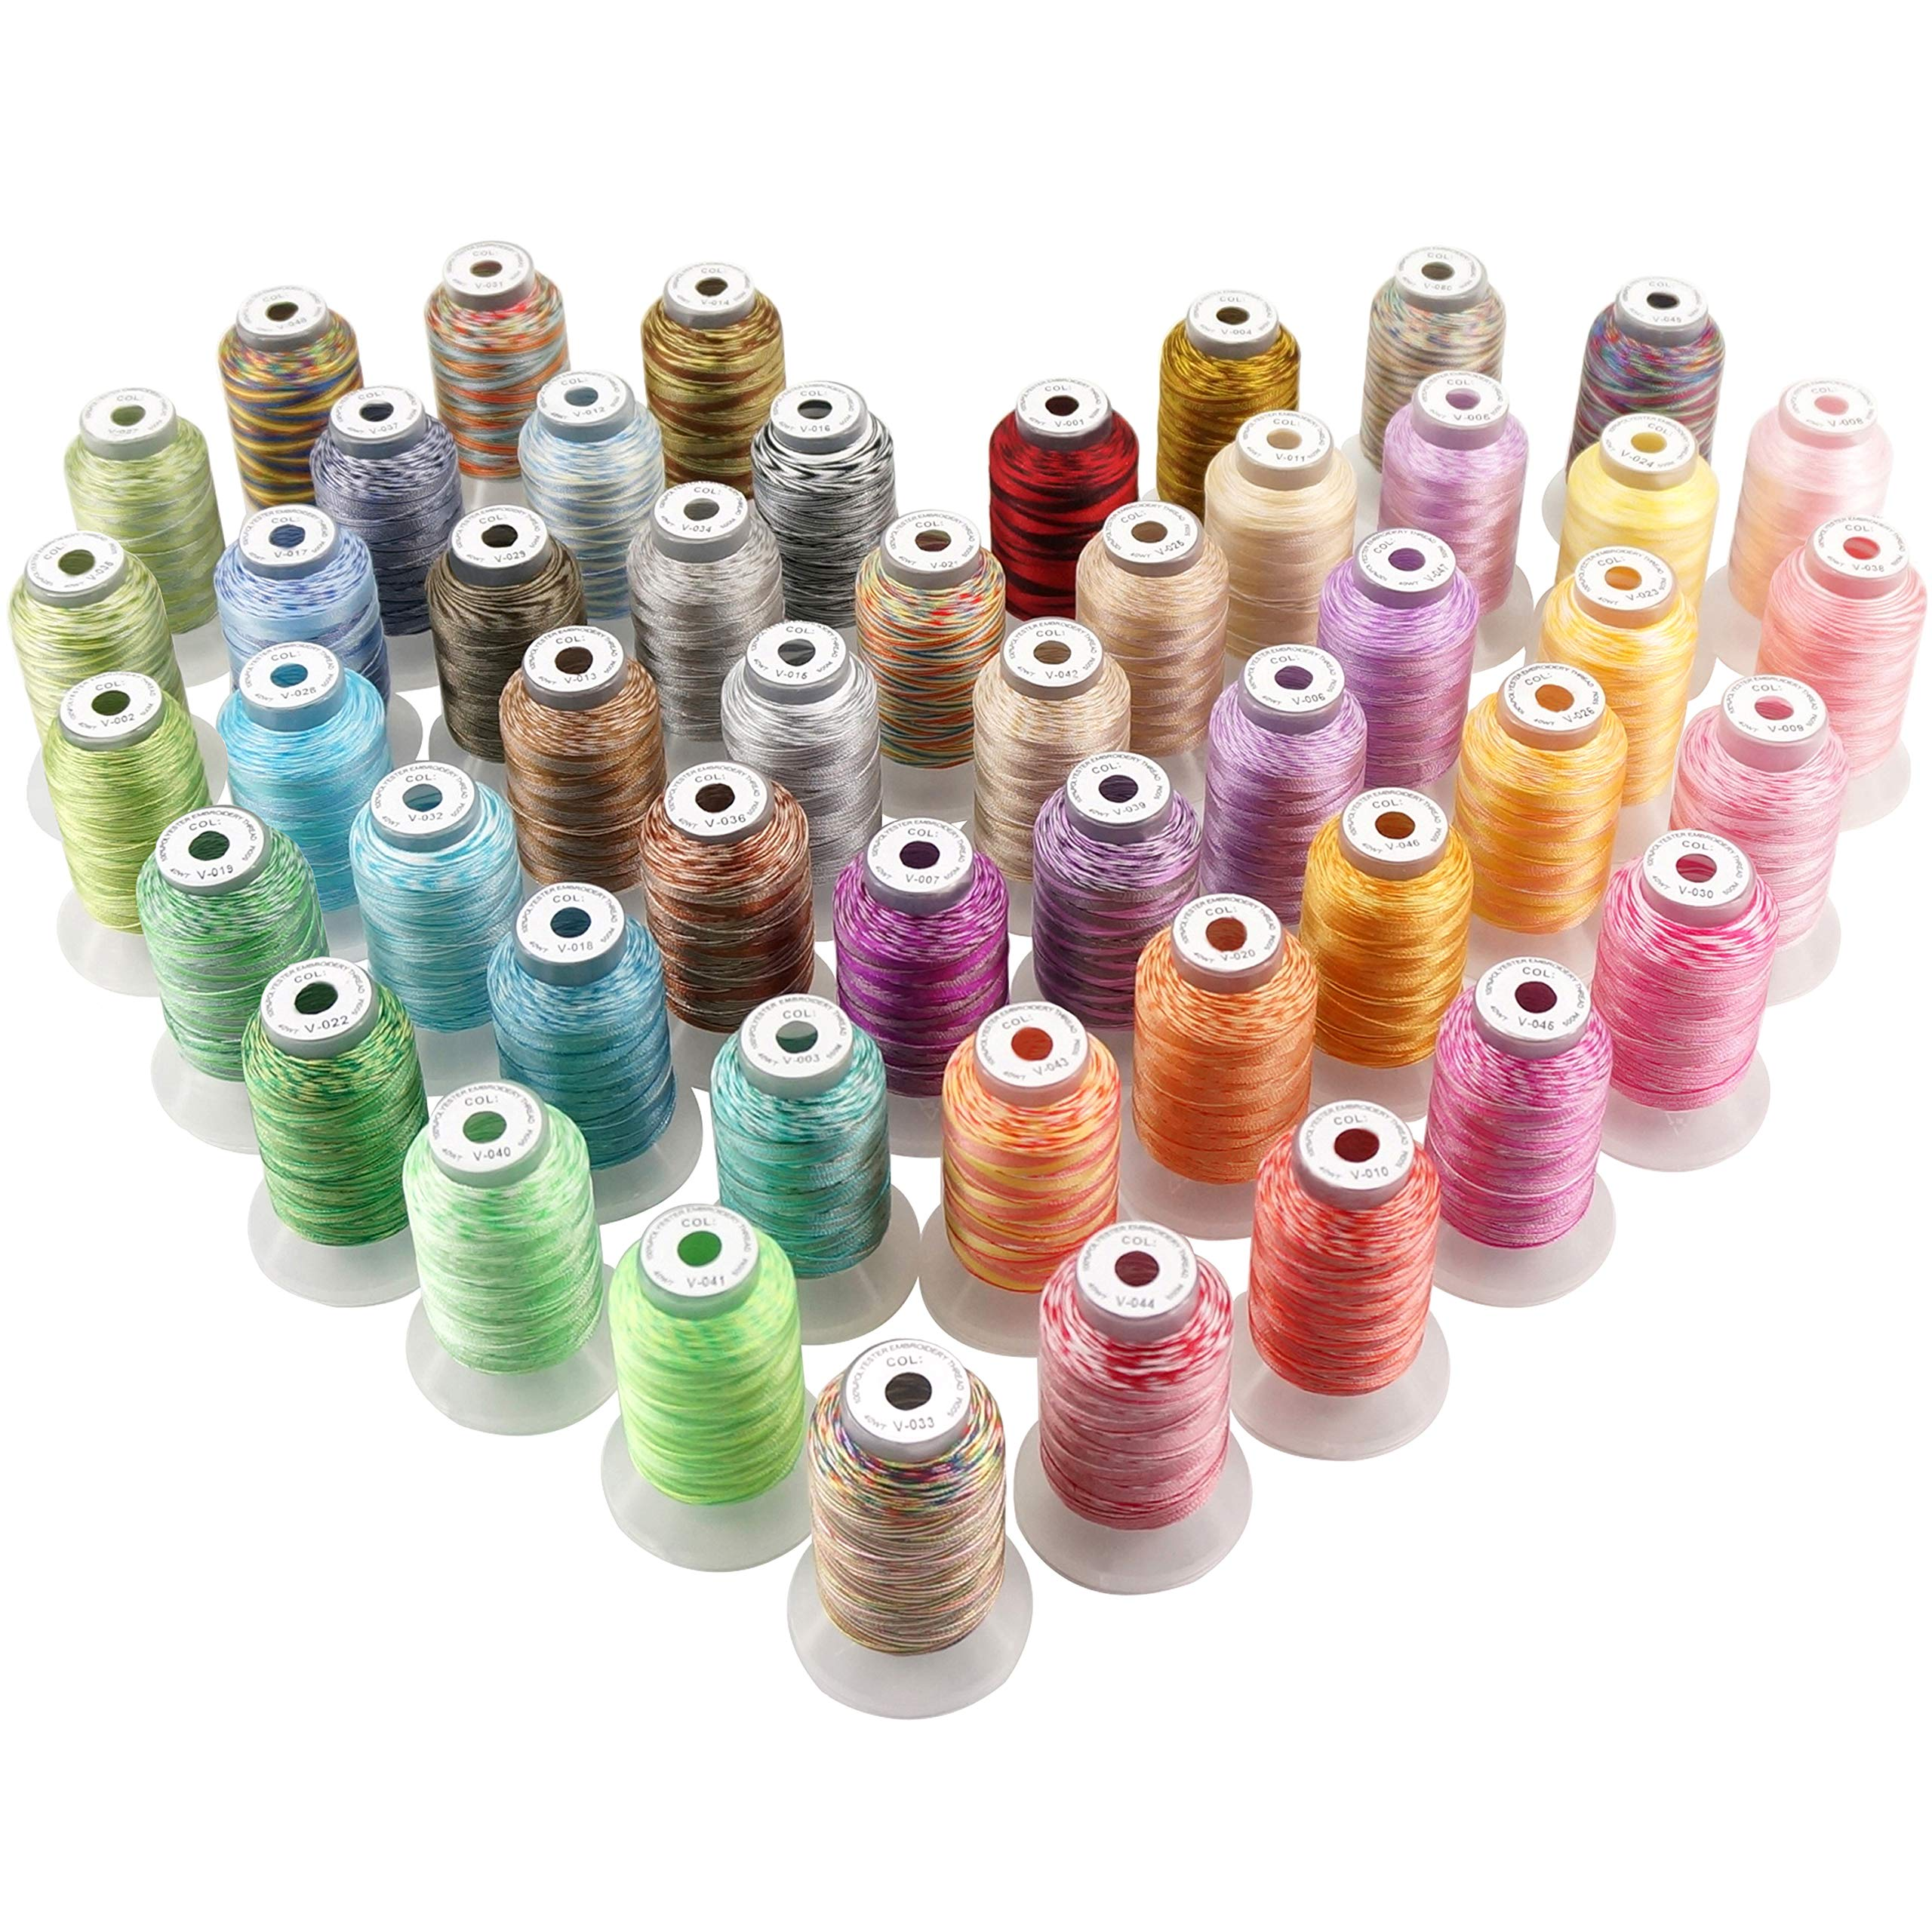 New brothread 50 Colors Variegated Polyester Embroidery Machine Thread Kit 500M (550Y) Each Spool for Brother Janome Babylock Singer Pfaff Bernina Husqvaran Embroidery and Sewing Machines by New brothread